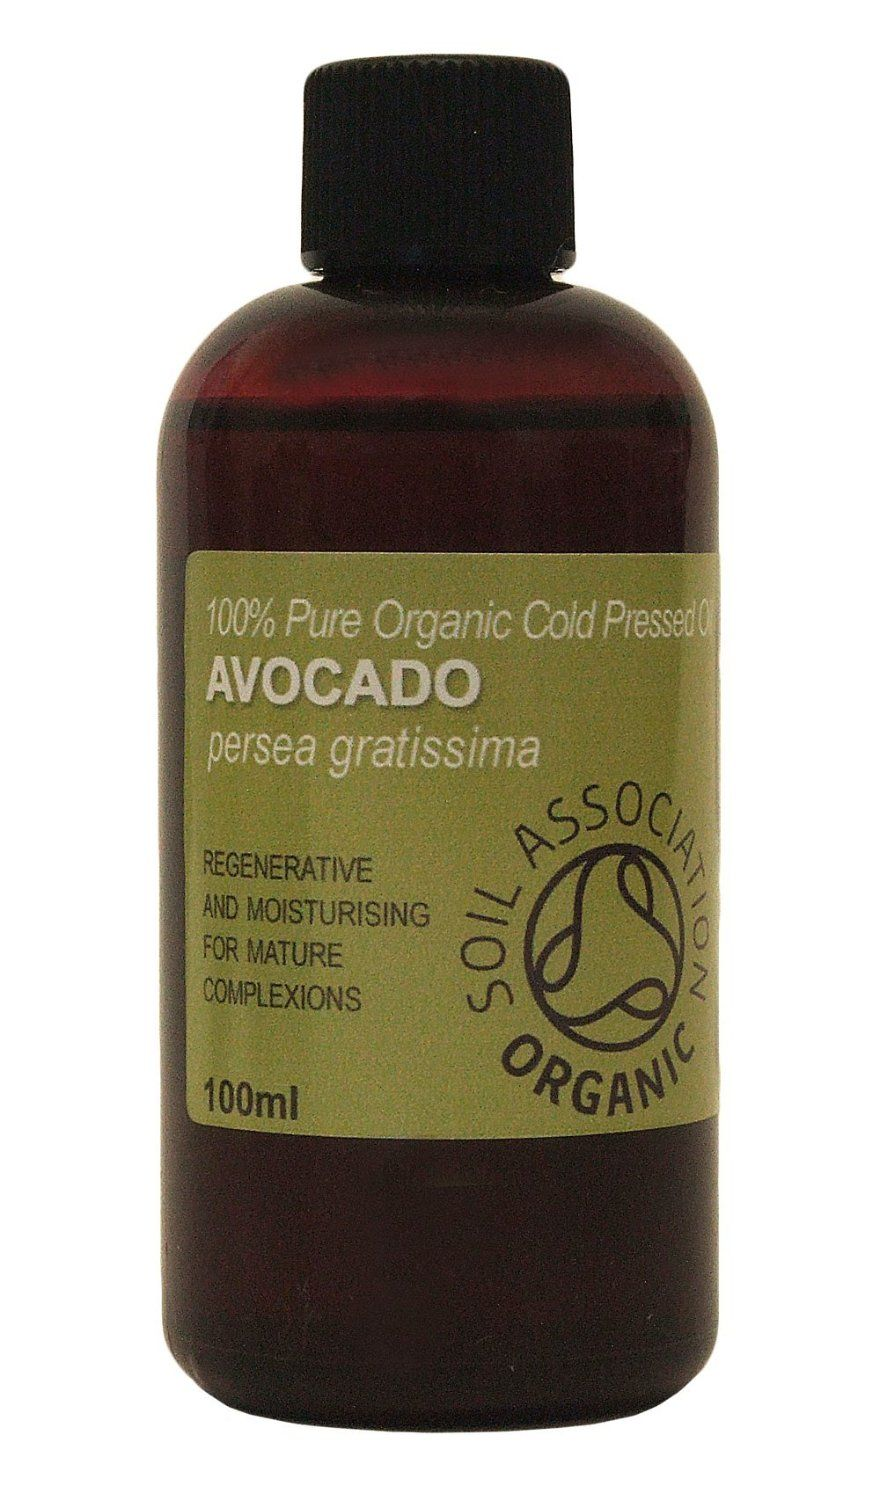 100ml Organic Avocado Oil - 100% Pure Carrier Oil: Amazon.co.uk: Health & Personal Care